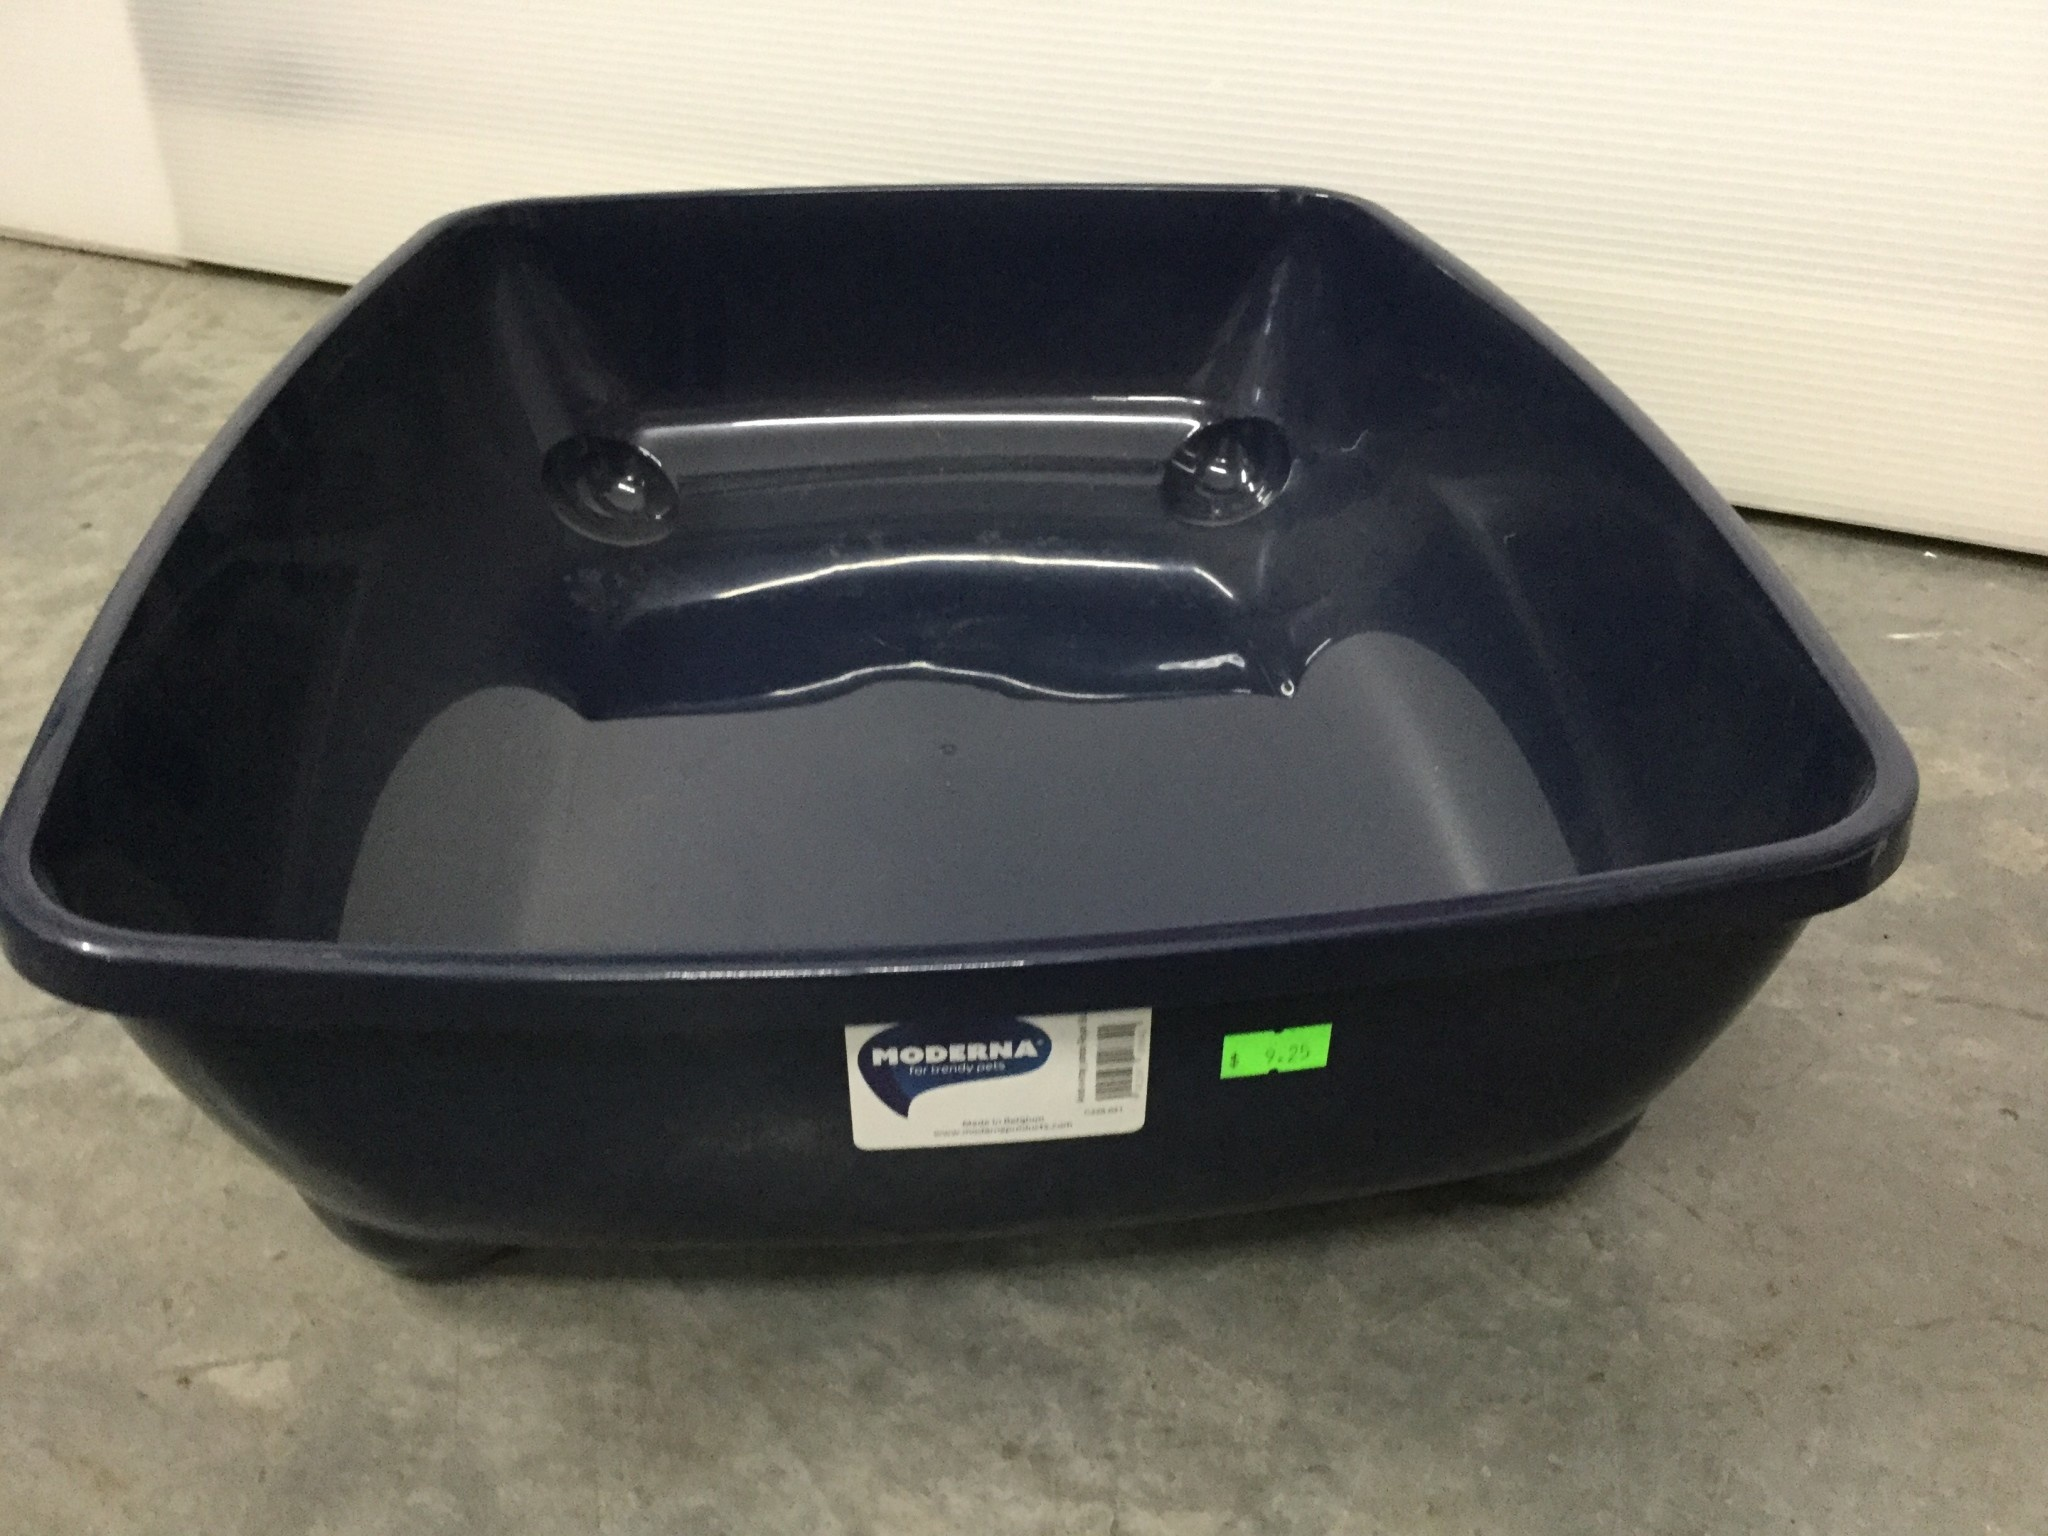 ARIST-O-TRAY Jumbo Litter Pan Royal Blue-1